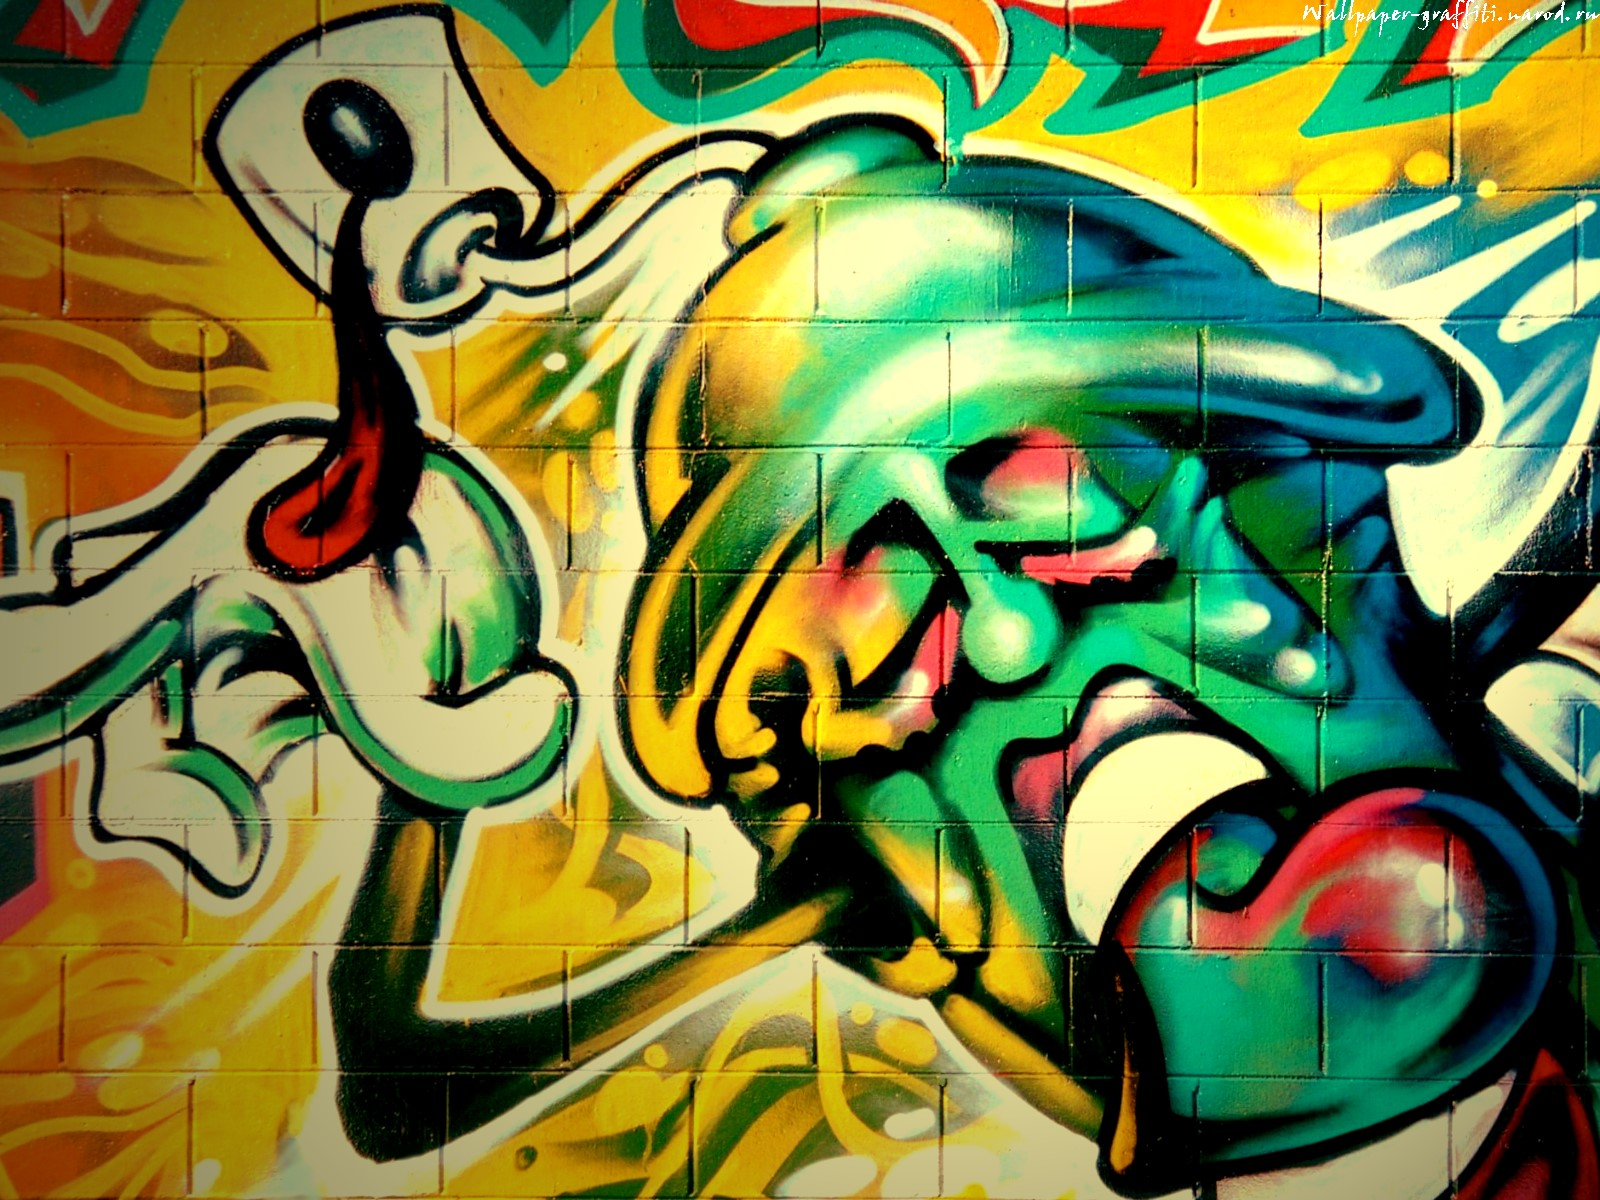 Download-Free-Graffiti-Images-For-Laptop-Desktops-wallpaper-wp3804705